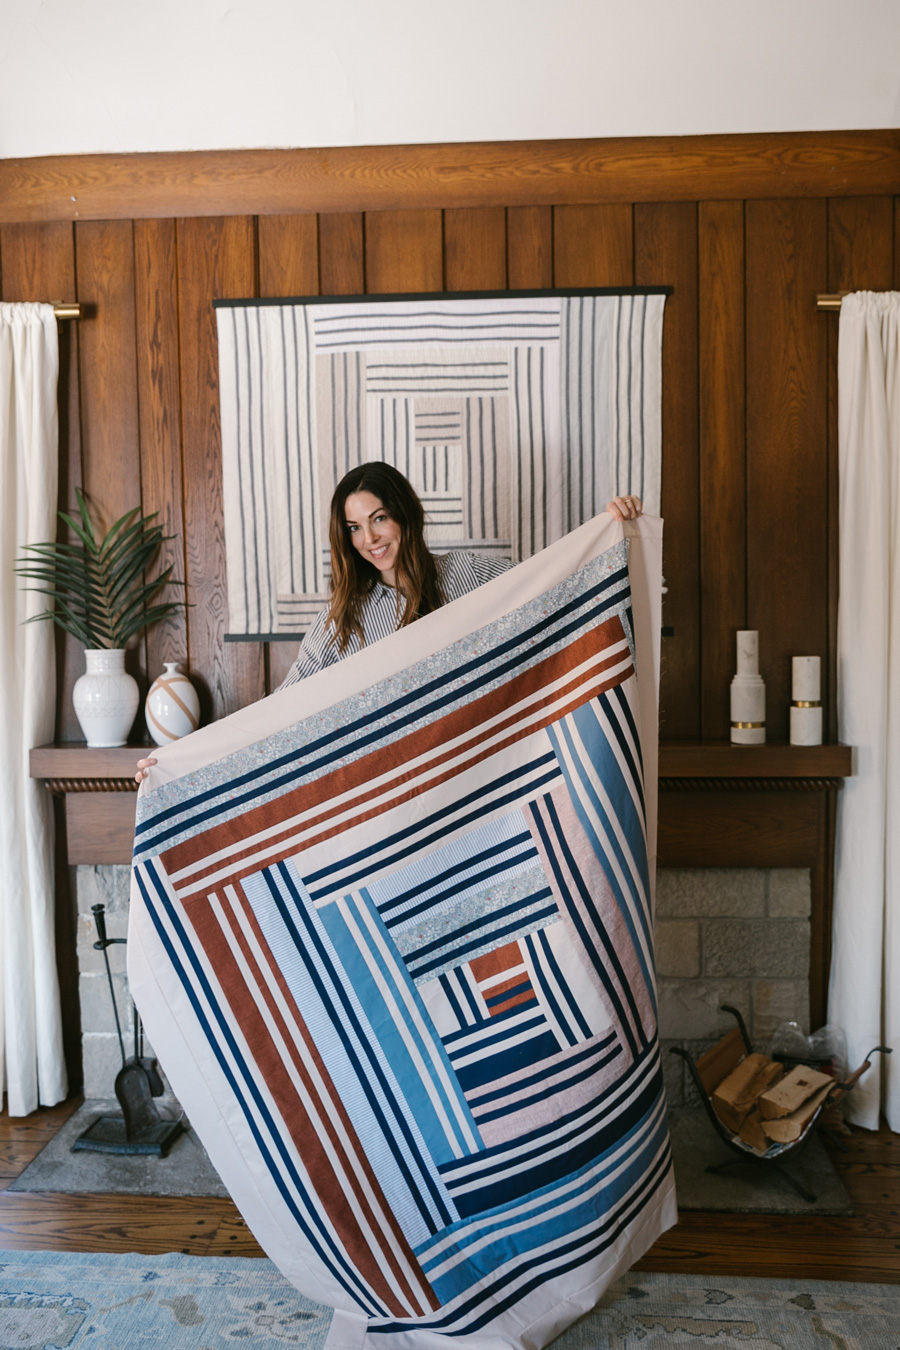 Join a fun community sew along! It is easy to participate. All you need is the Grow quilt pattern. Post your weekly progress as we make this quilt together for a chance to win prizes! suzyquilts.com #quiltalong #sewalong